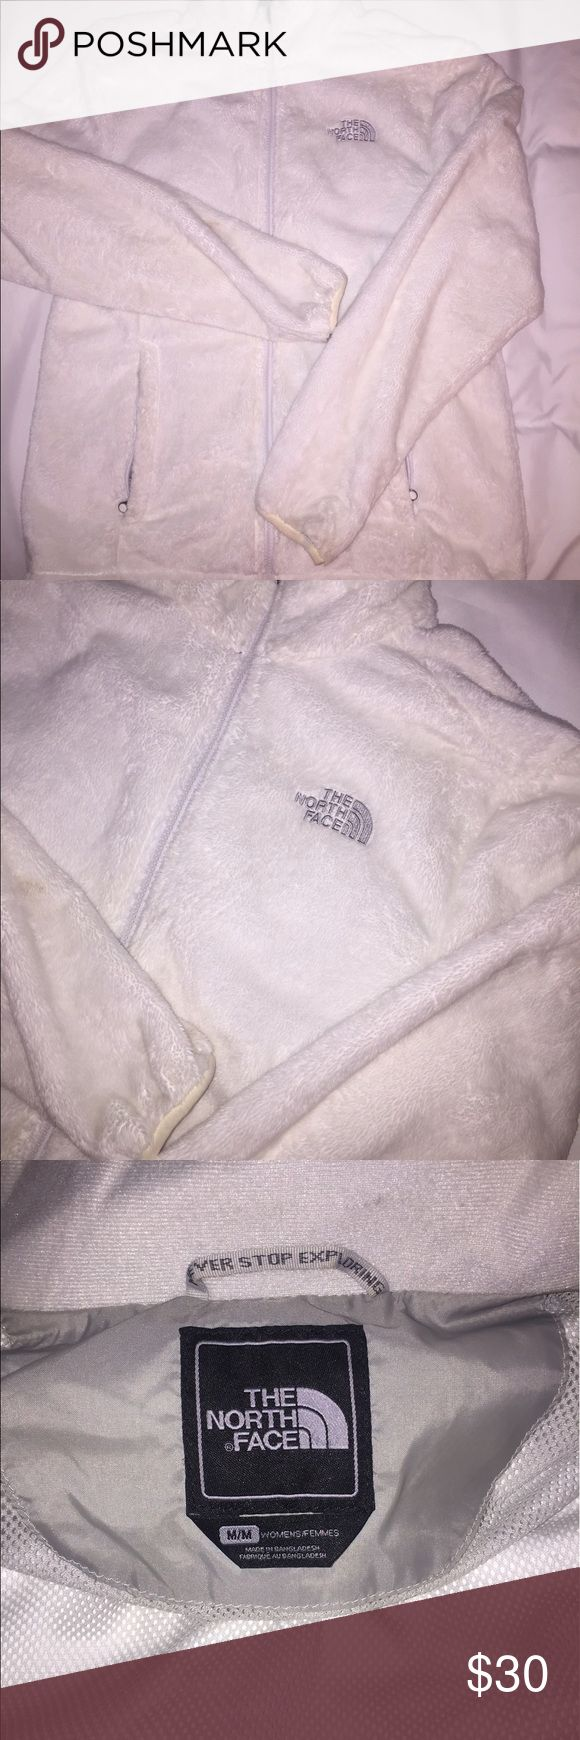 North Face Winter Jacket Lightweight super soft North Face jacket, women's size M. About 7 years old. In good condition other than some wear on the sleeves. Jackets & Coats Utility Jackets